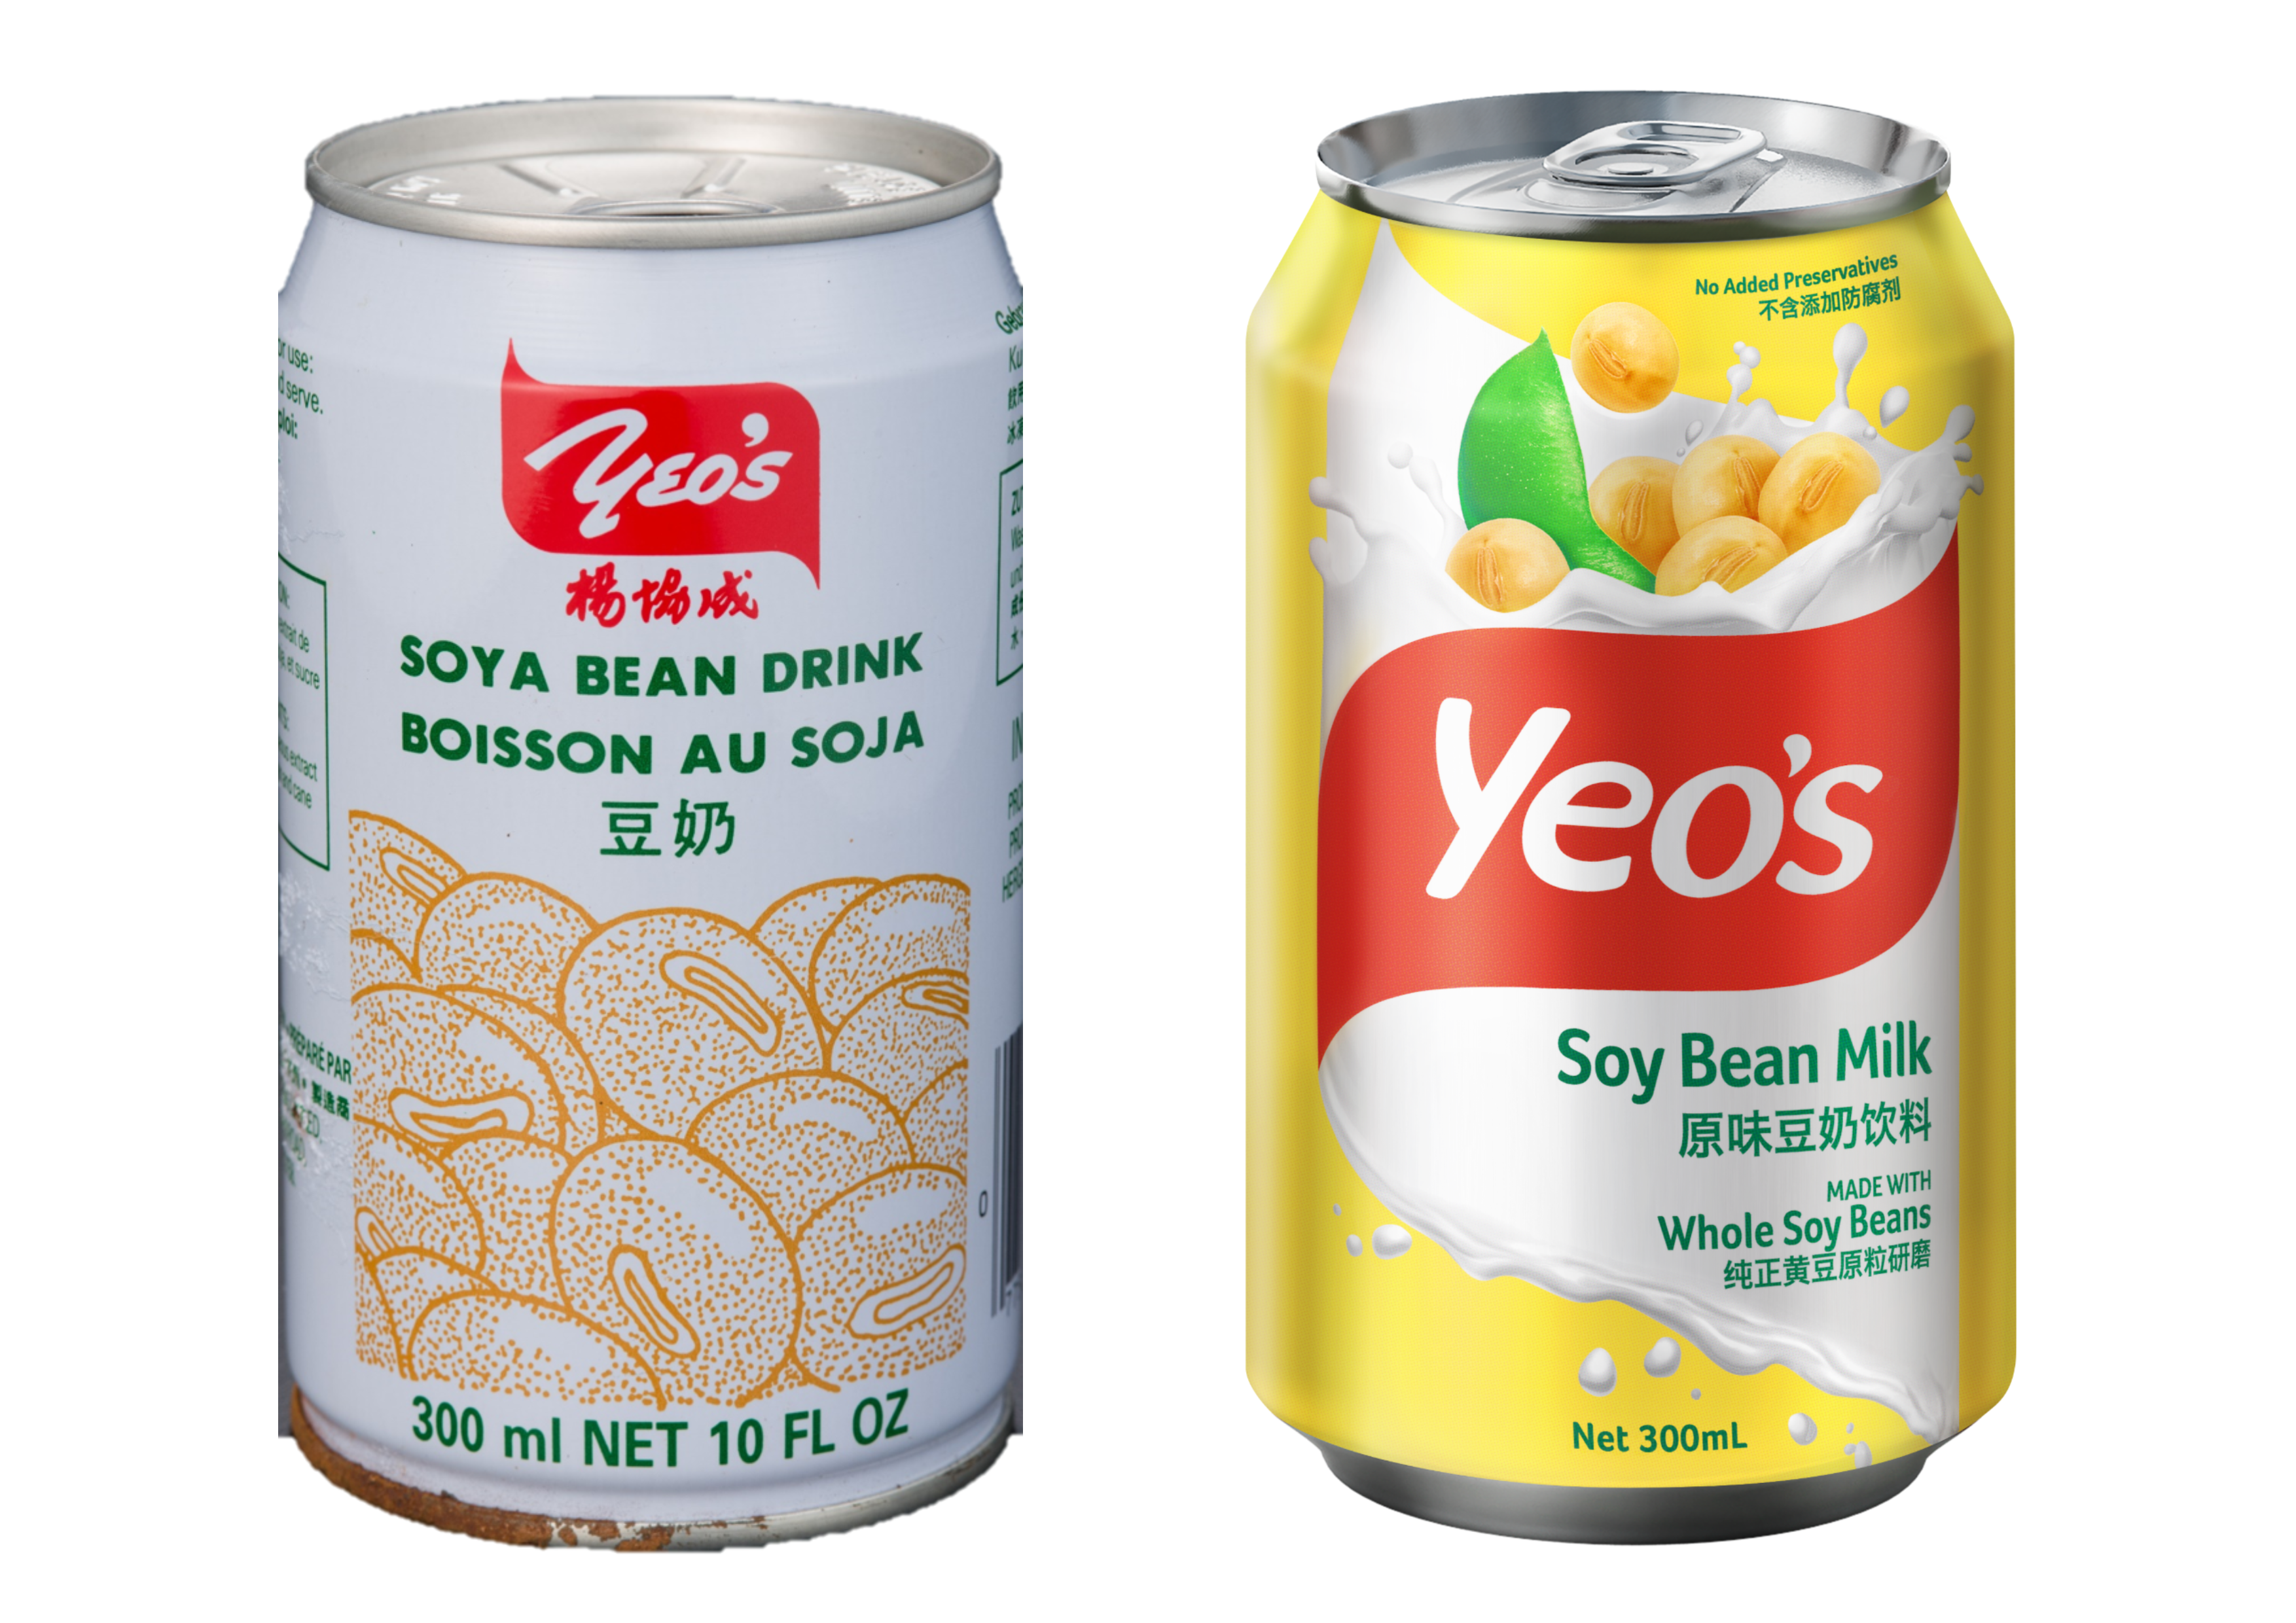 Yeos drinks